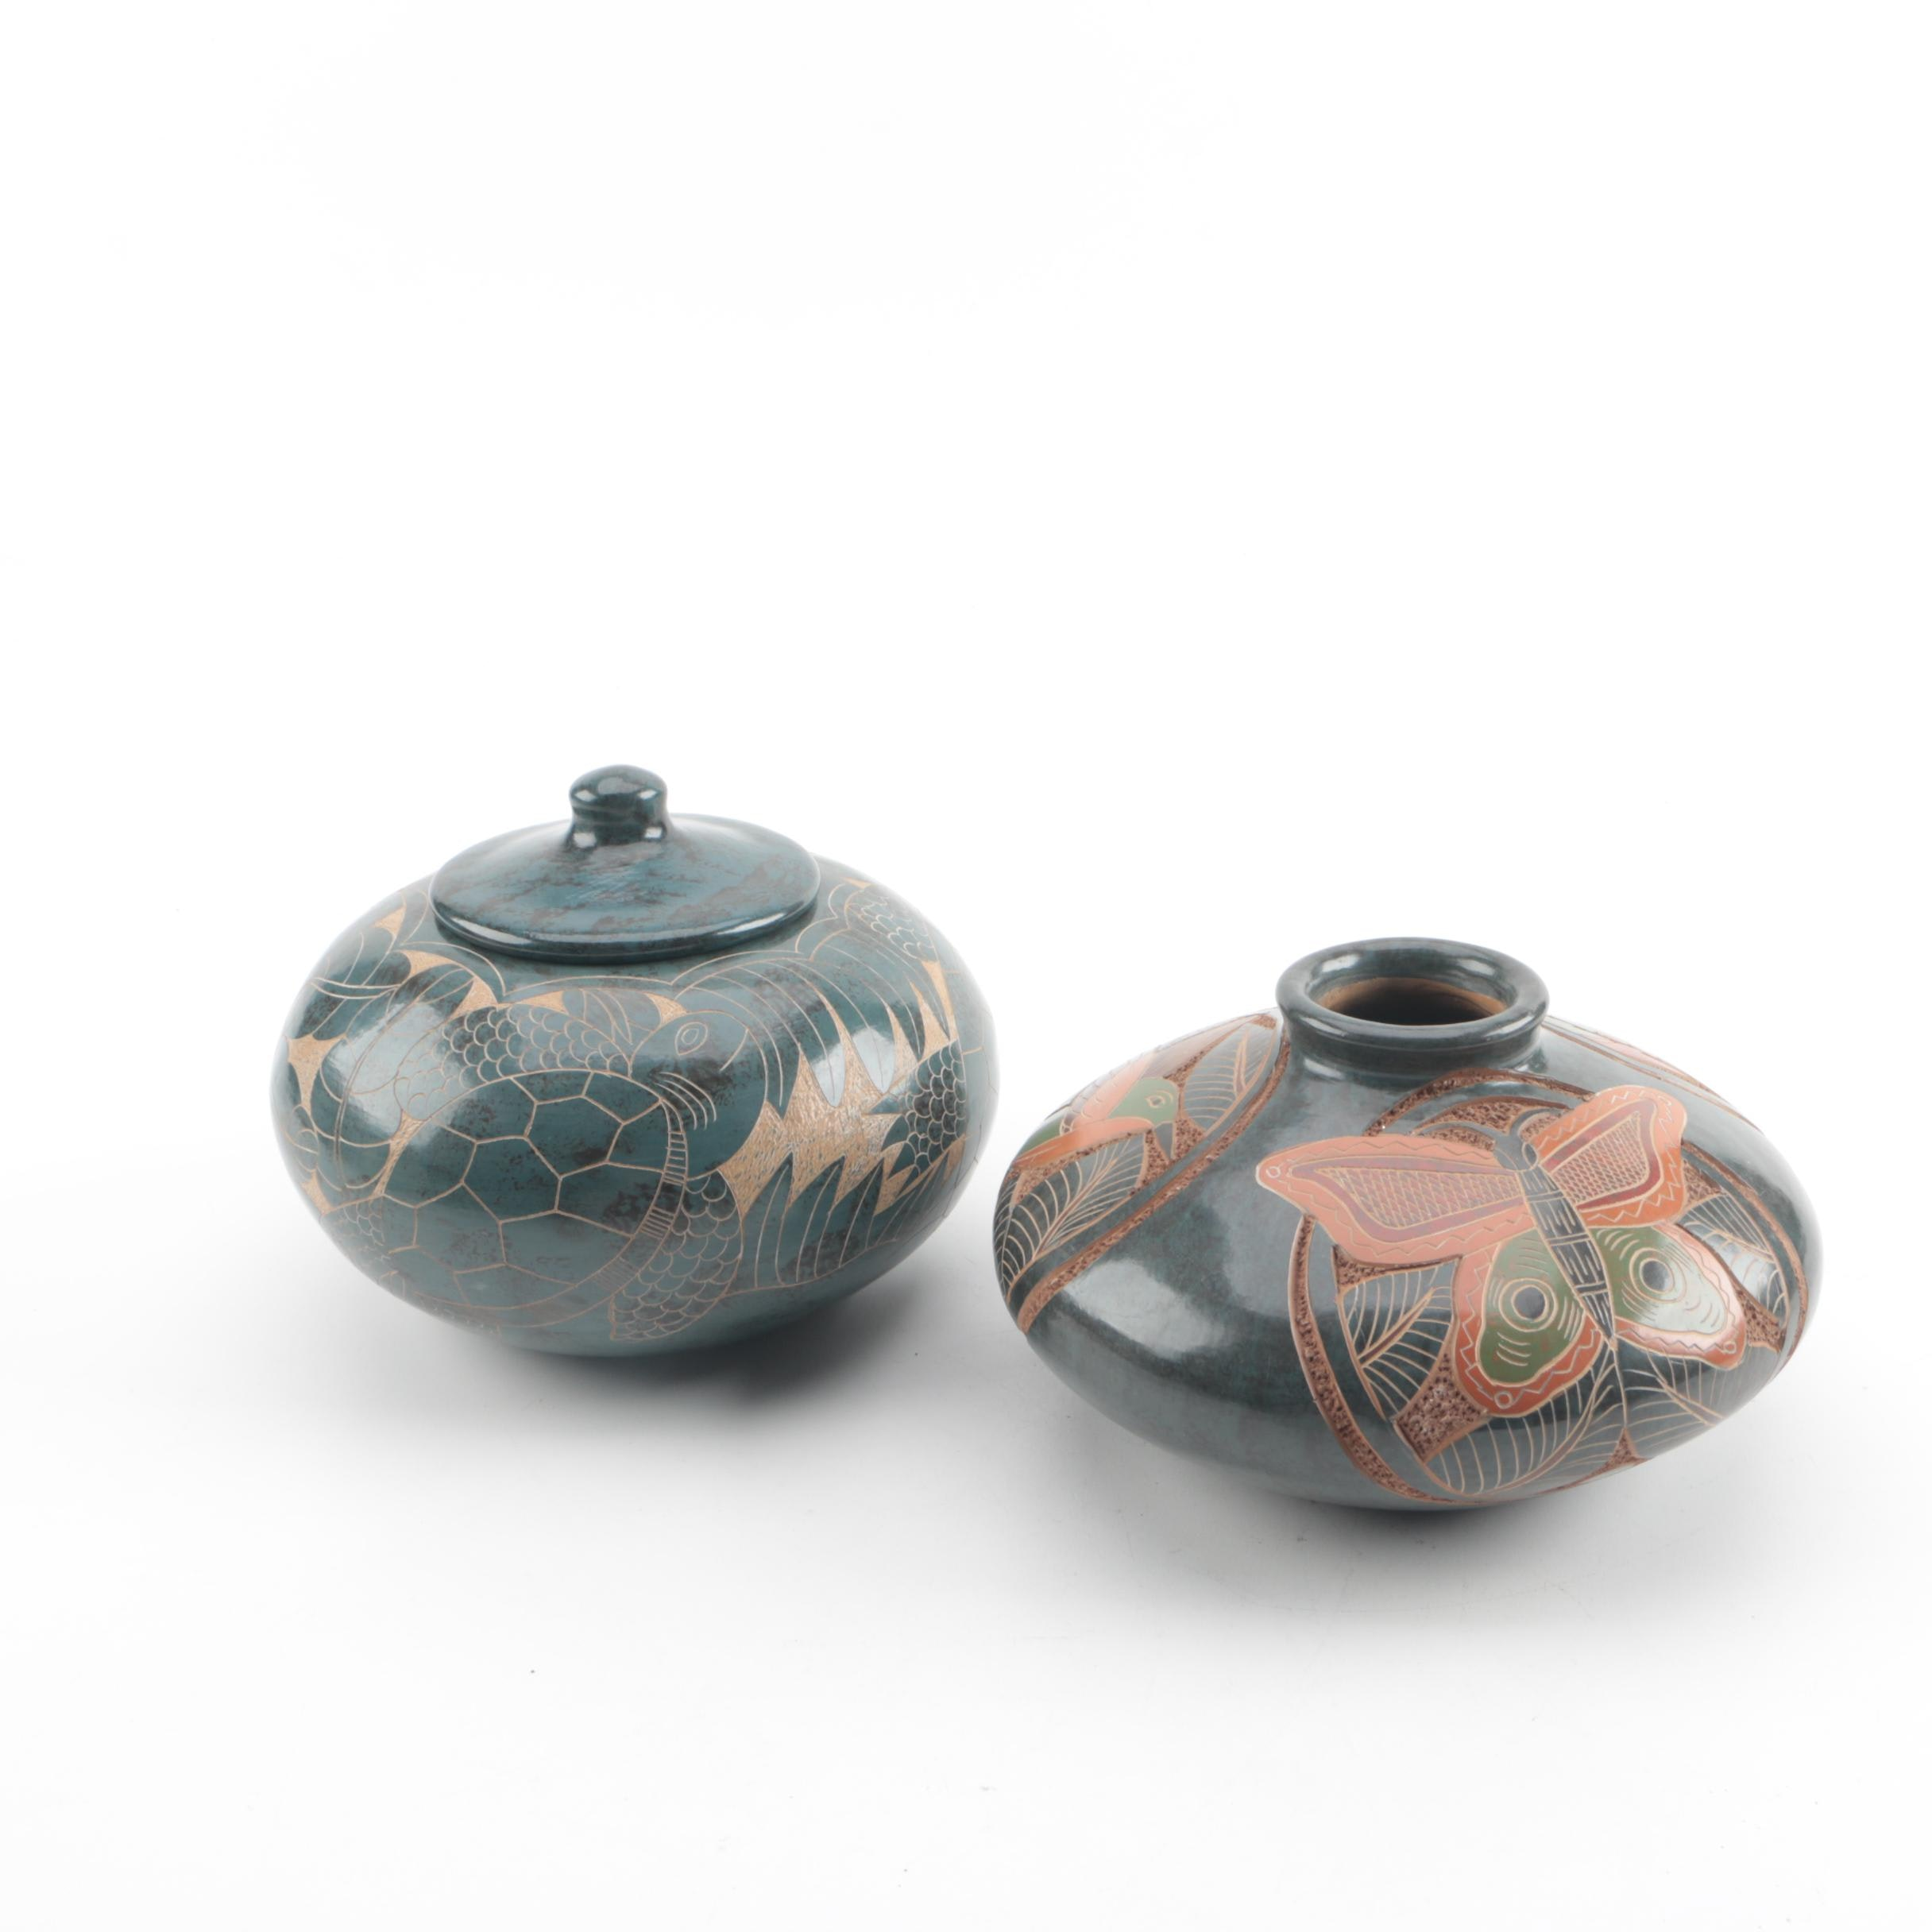 Central American Style Earthenware Vase and Lidded Vessel